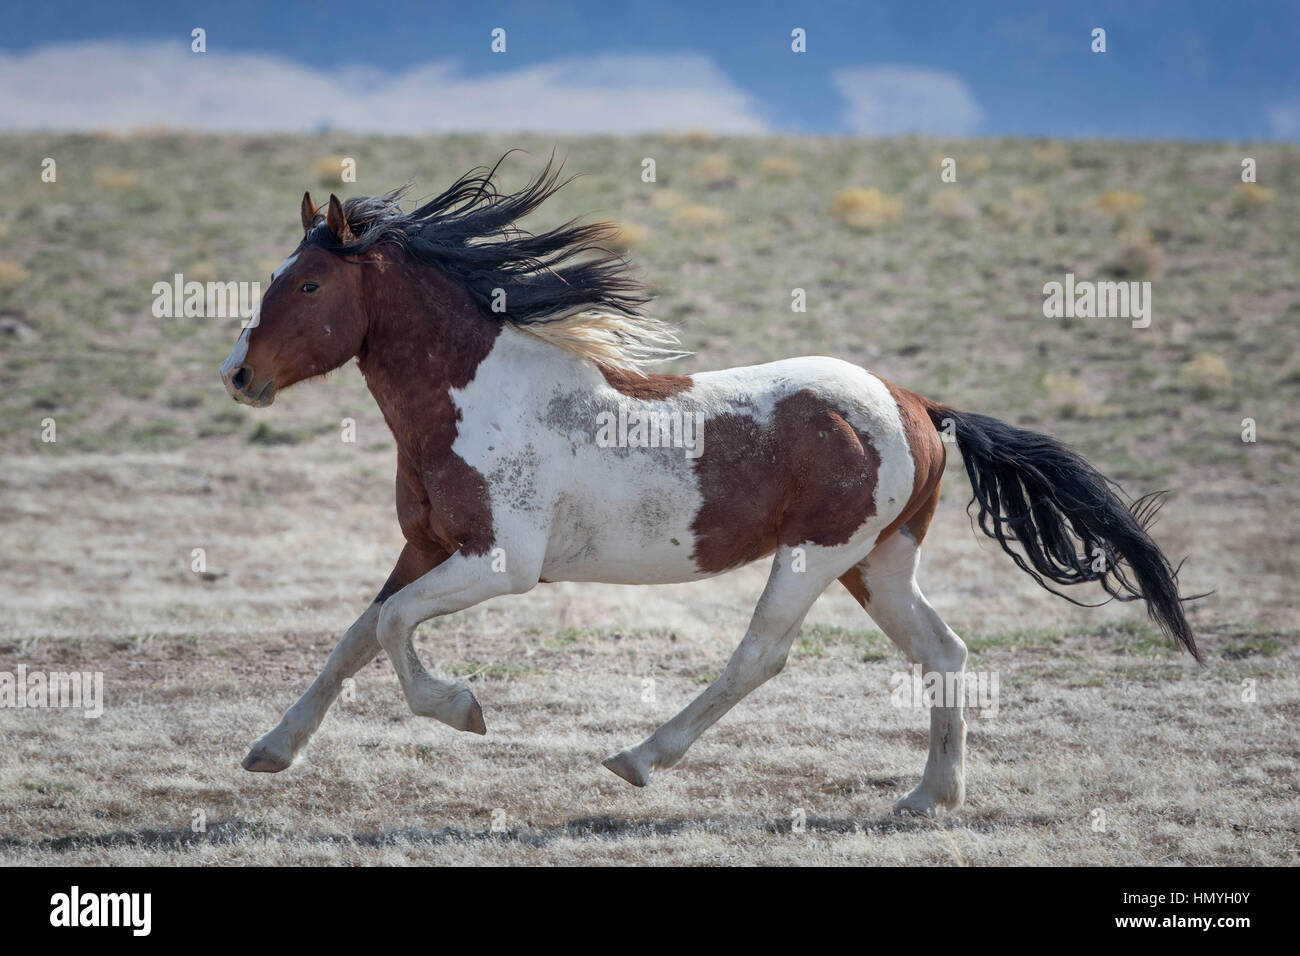 Stock Brown and White Paint Horse Galloping (Equus ferus caballus), Wild Horse of West Desert, Utah, USA, North - Stock Image